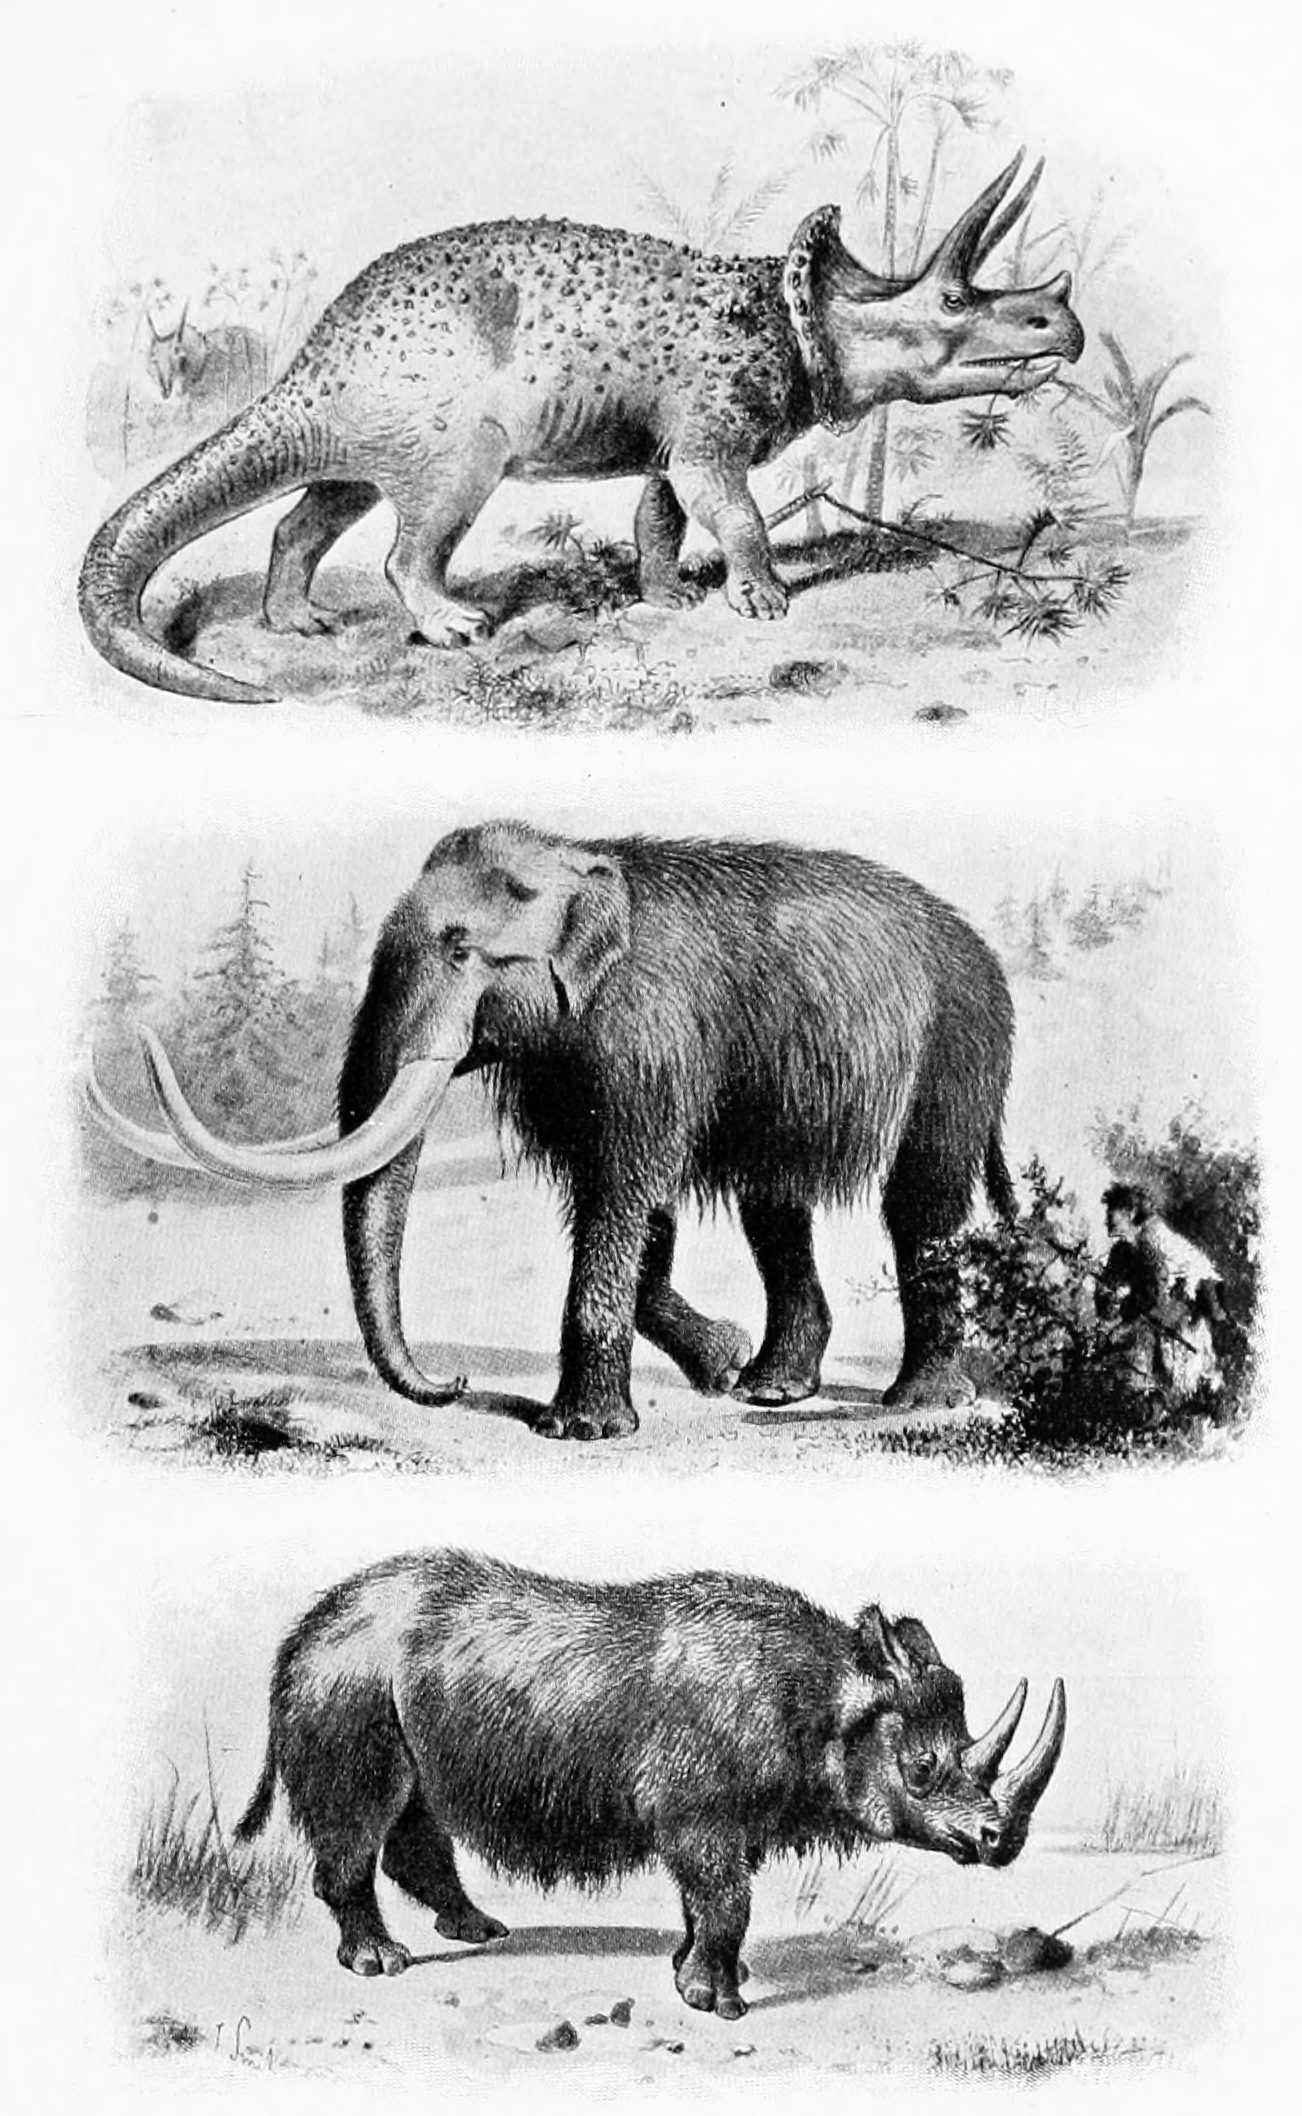 Ancient animals from Centennial History of Oregonpng